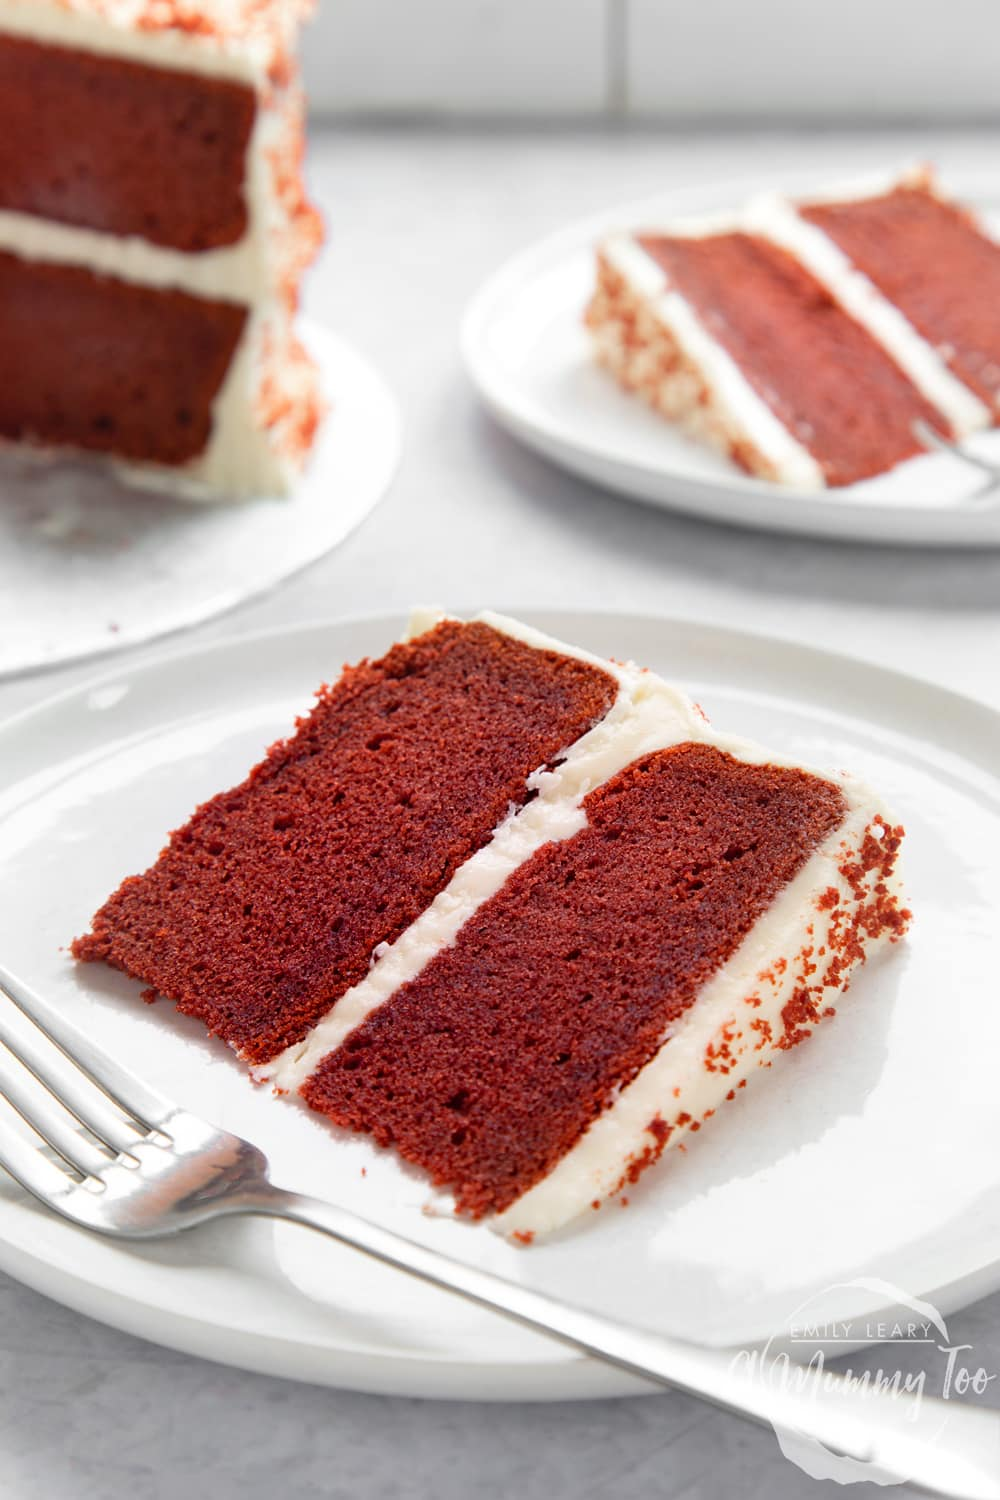 A slice of filled red velvet cake on a white plate. A fork rests on the plate. More cake is shown in the background.